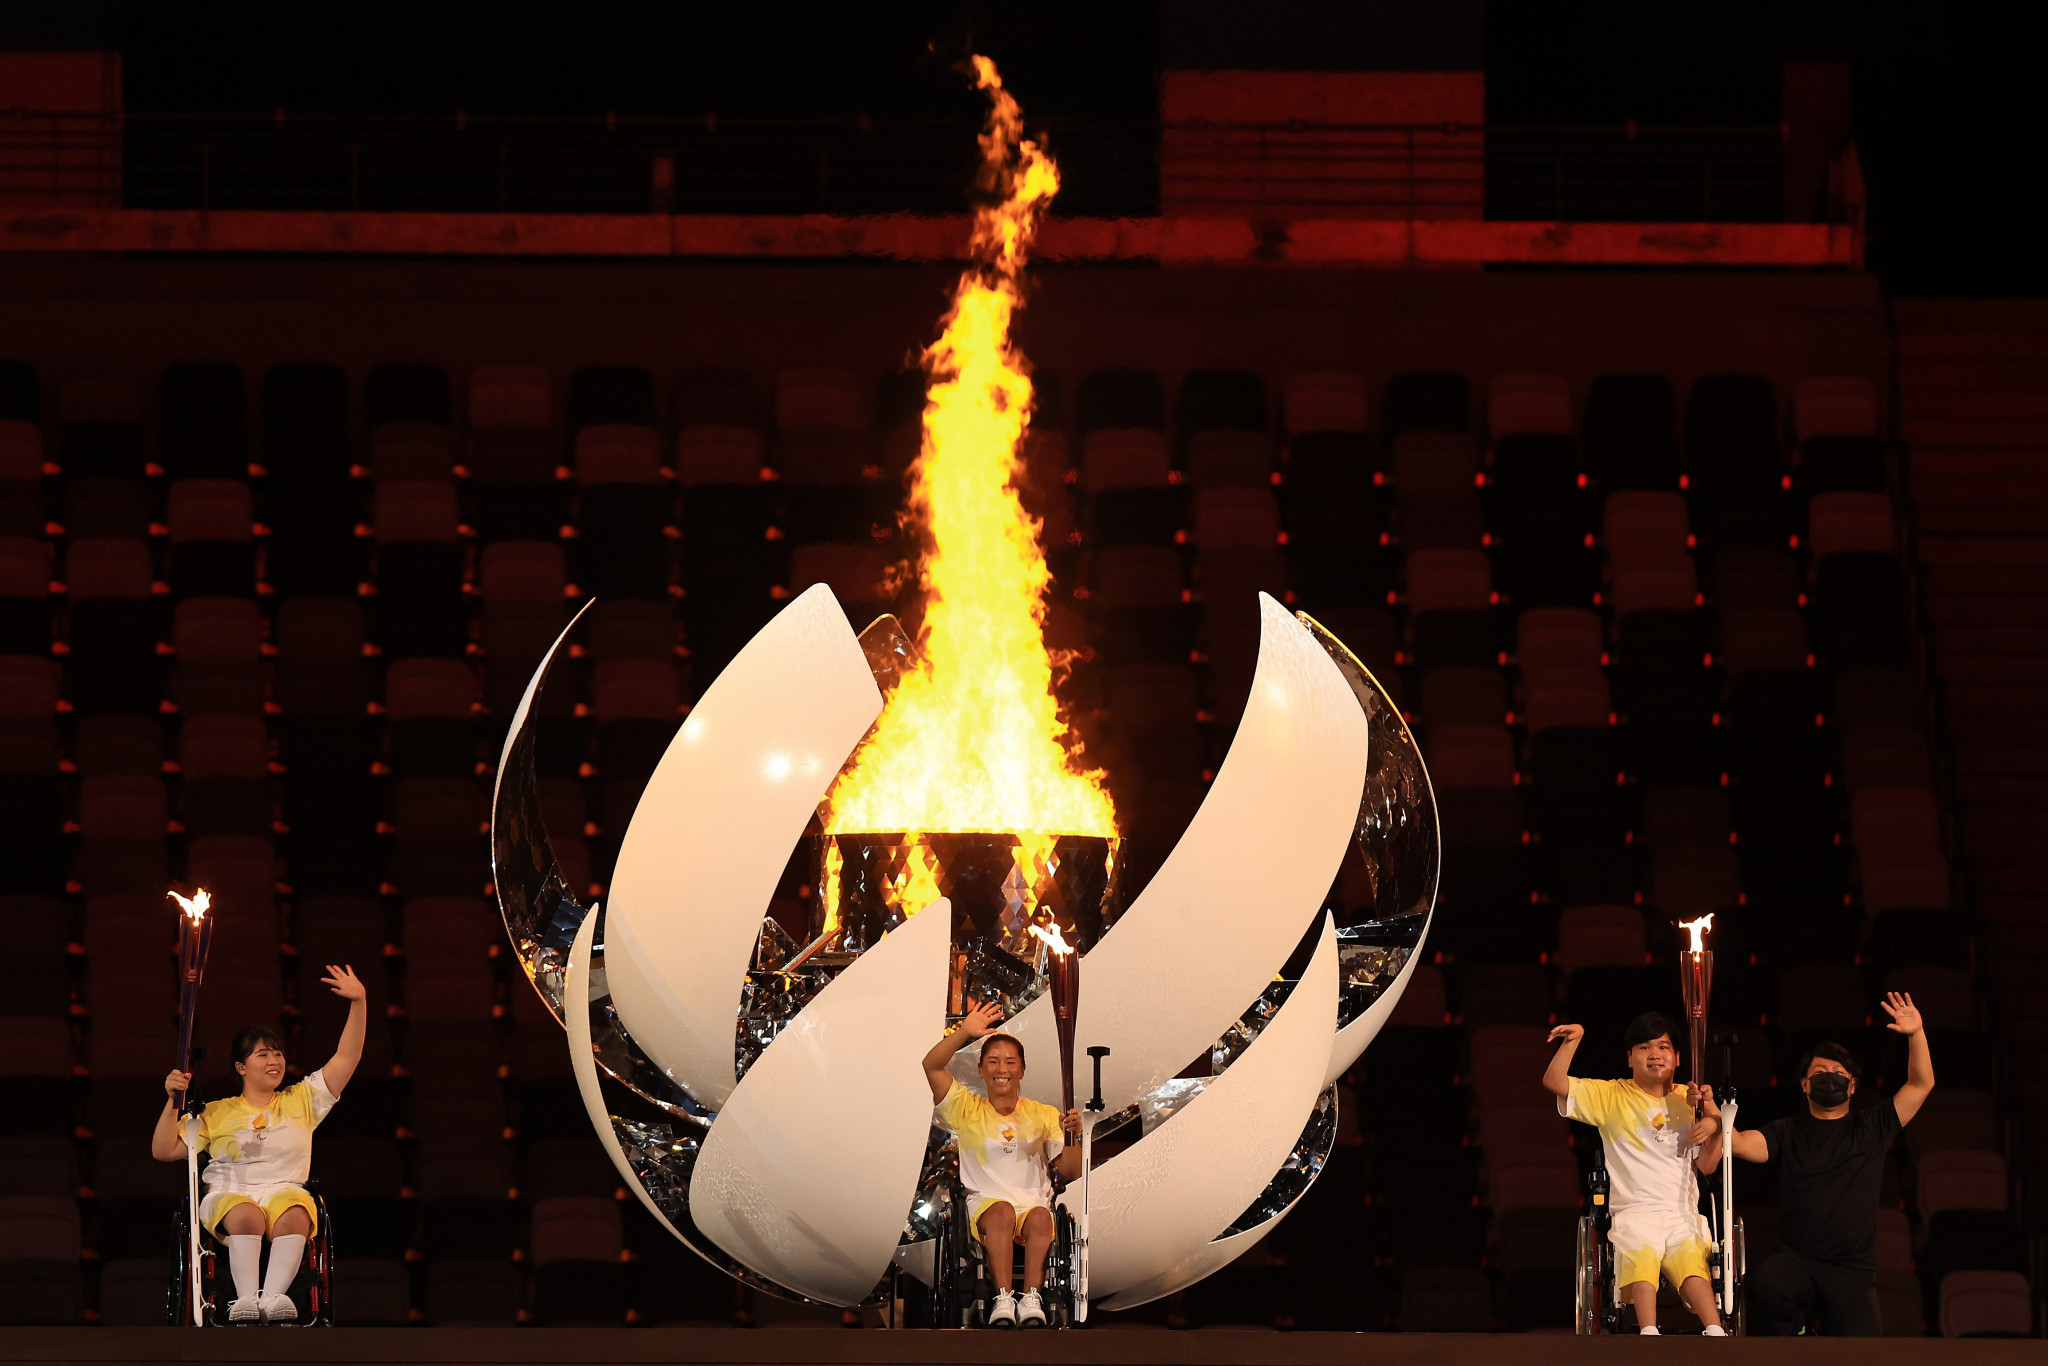 Tokyo 2020 Paralympic Games: Opening Ceremony